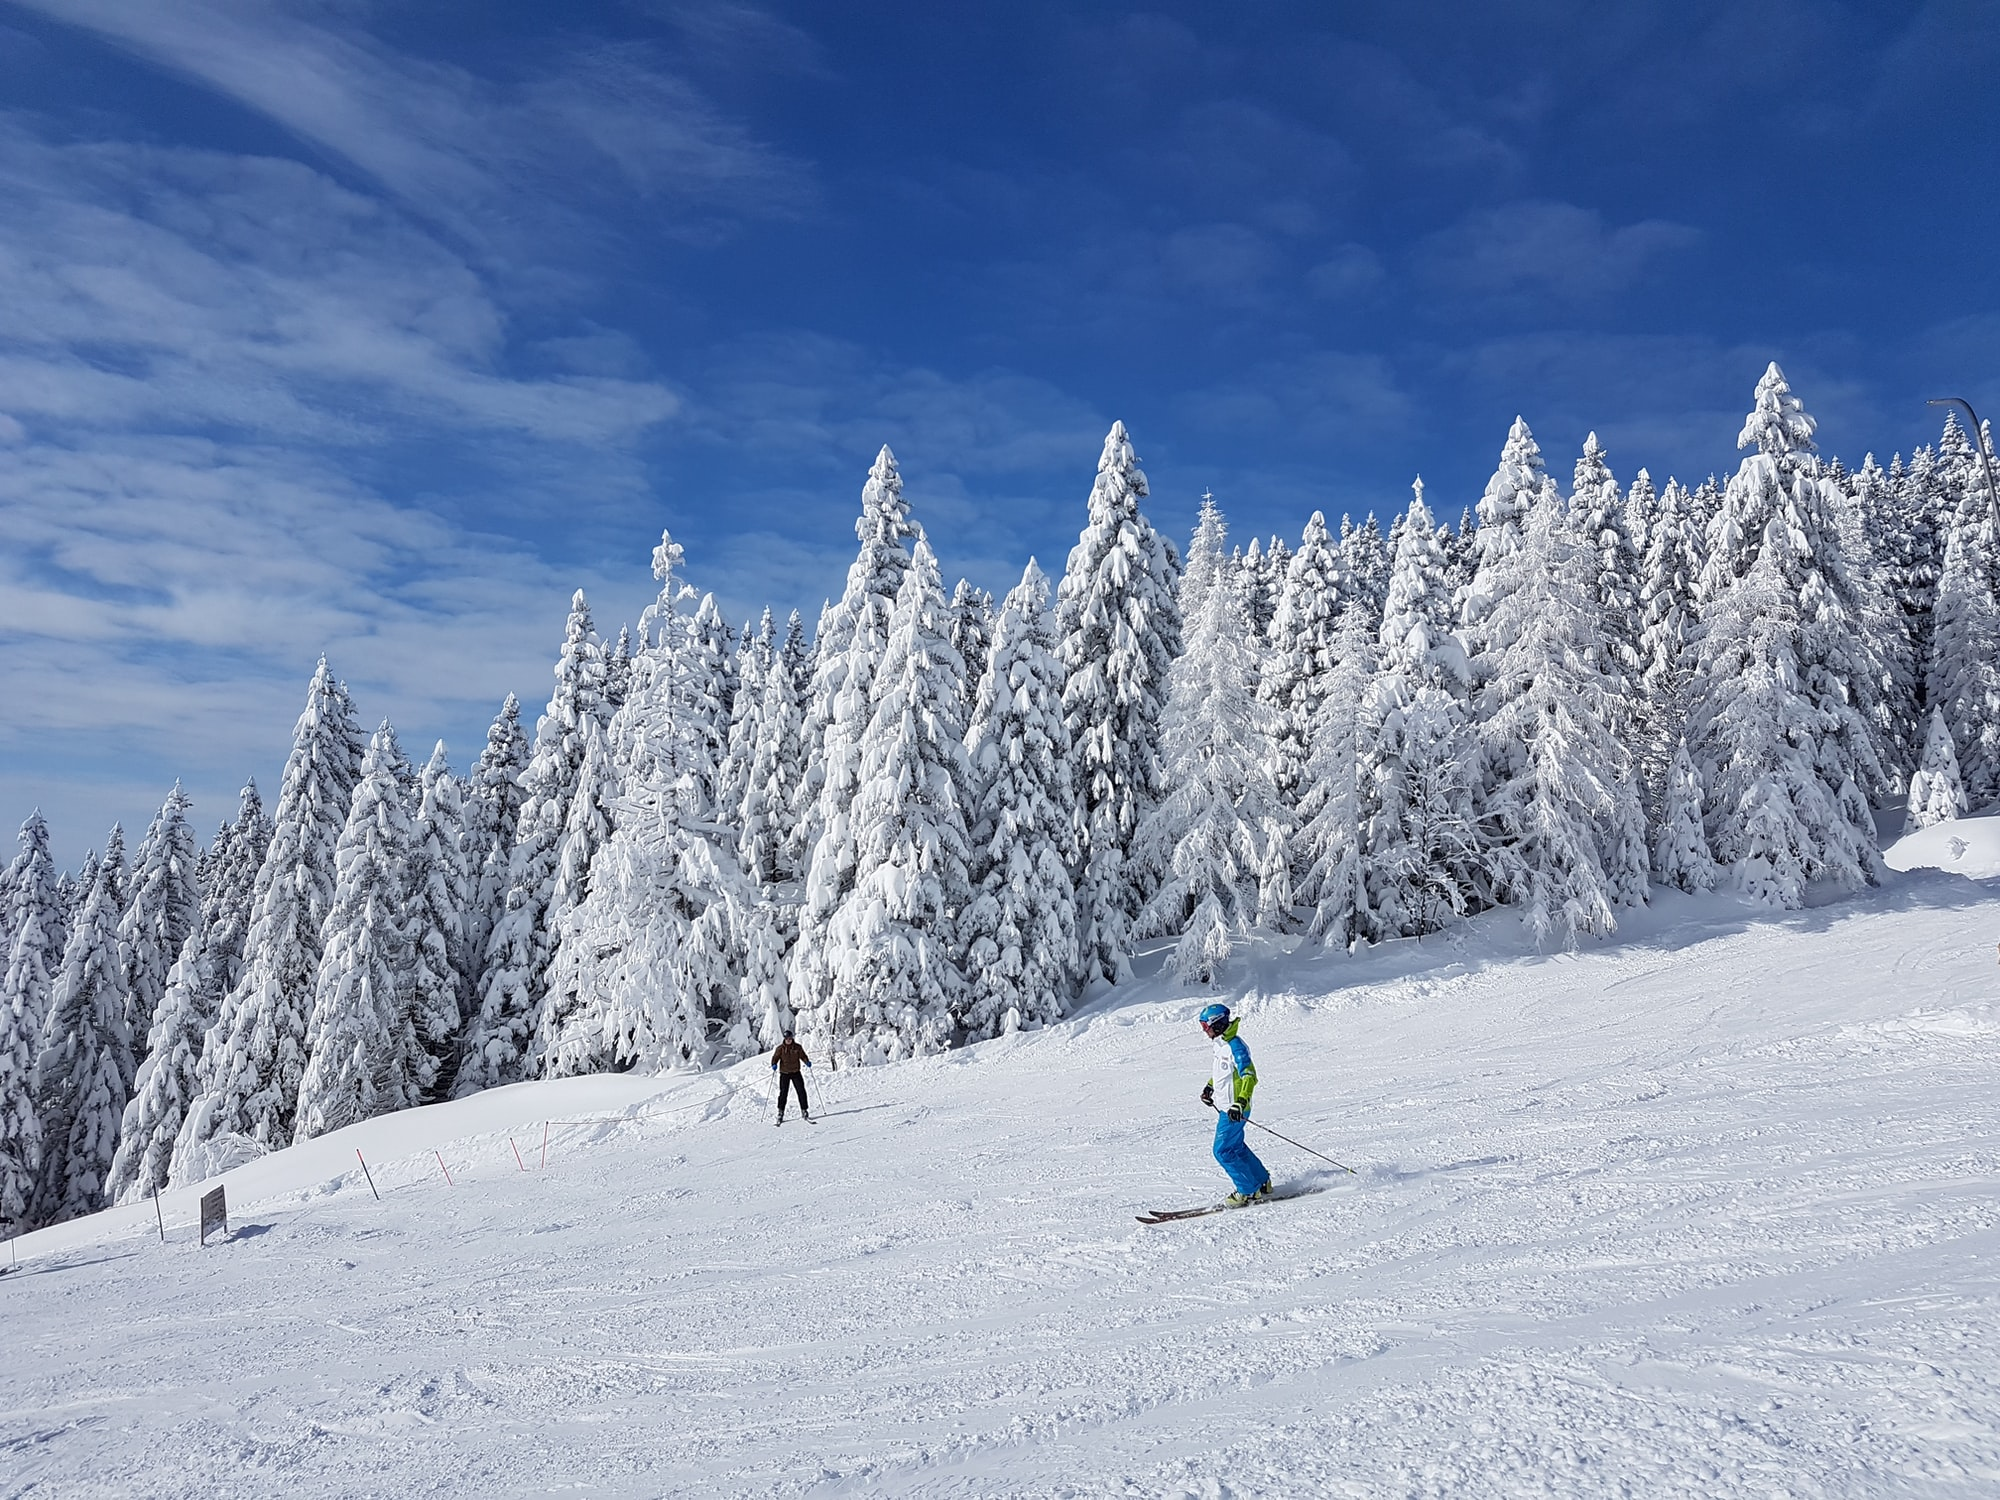 Skiers coming down the slopes in a ski resort in Slovenia.